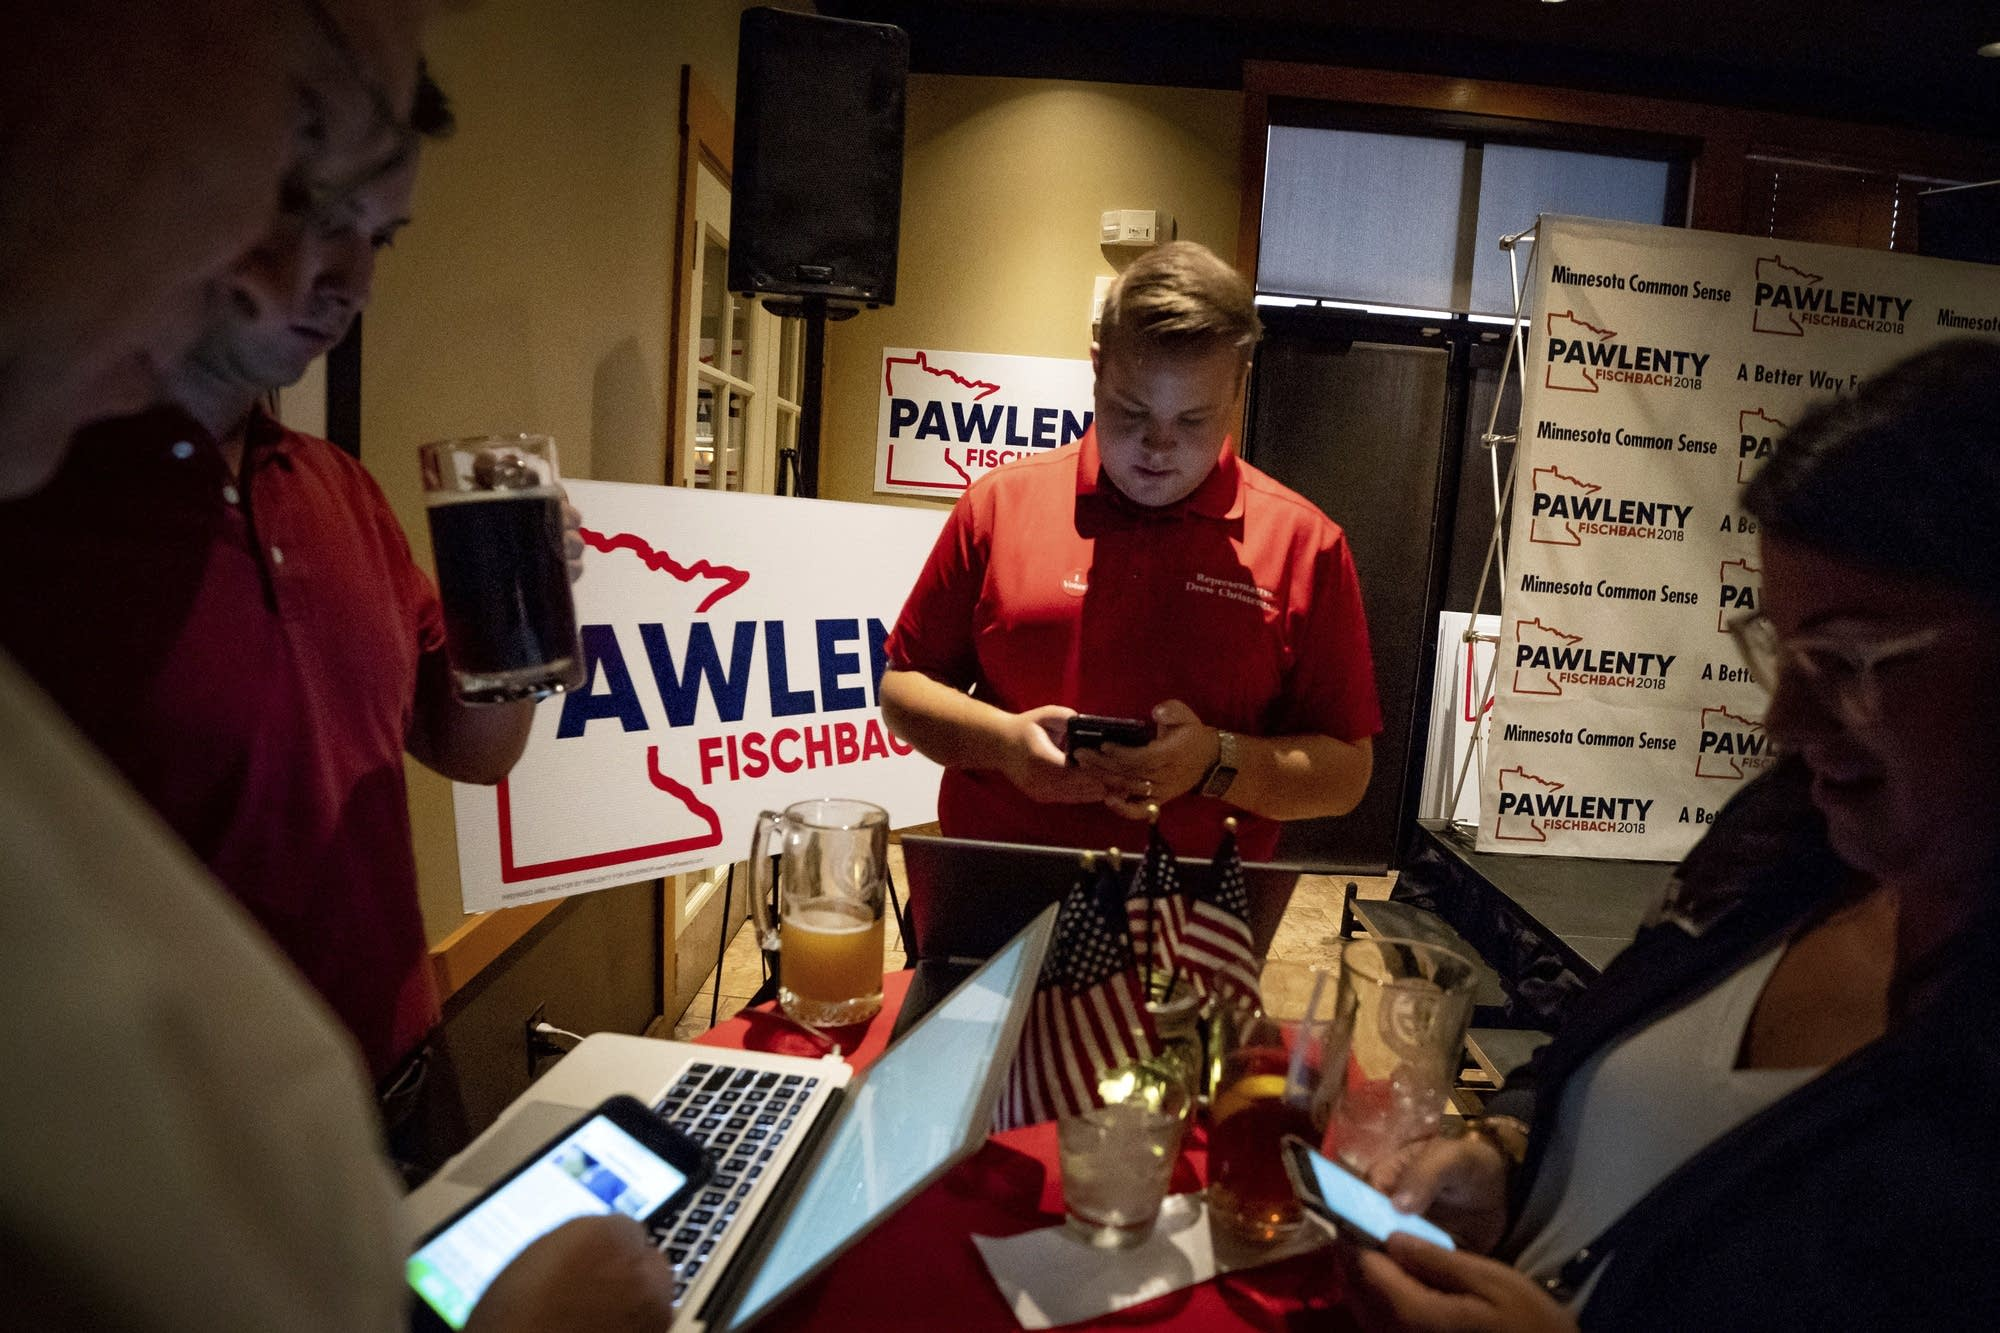 Tim Pawlenty supporters check results at his election night gathering.